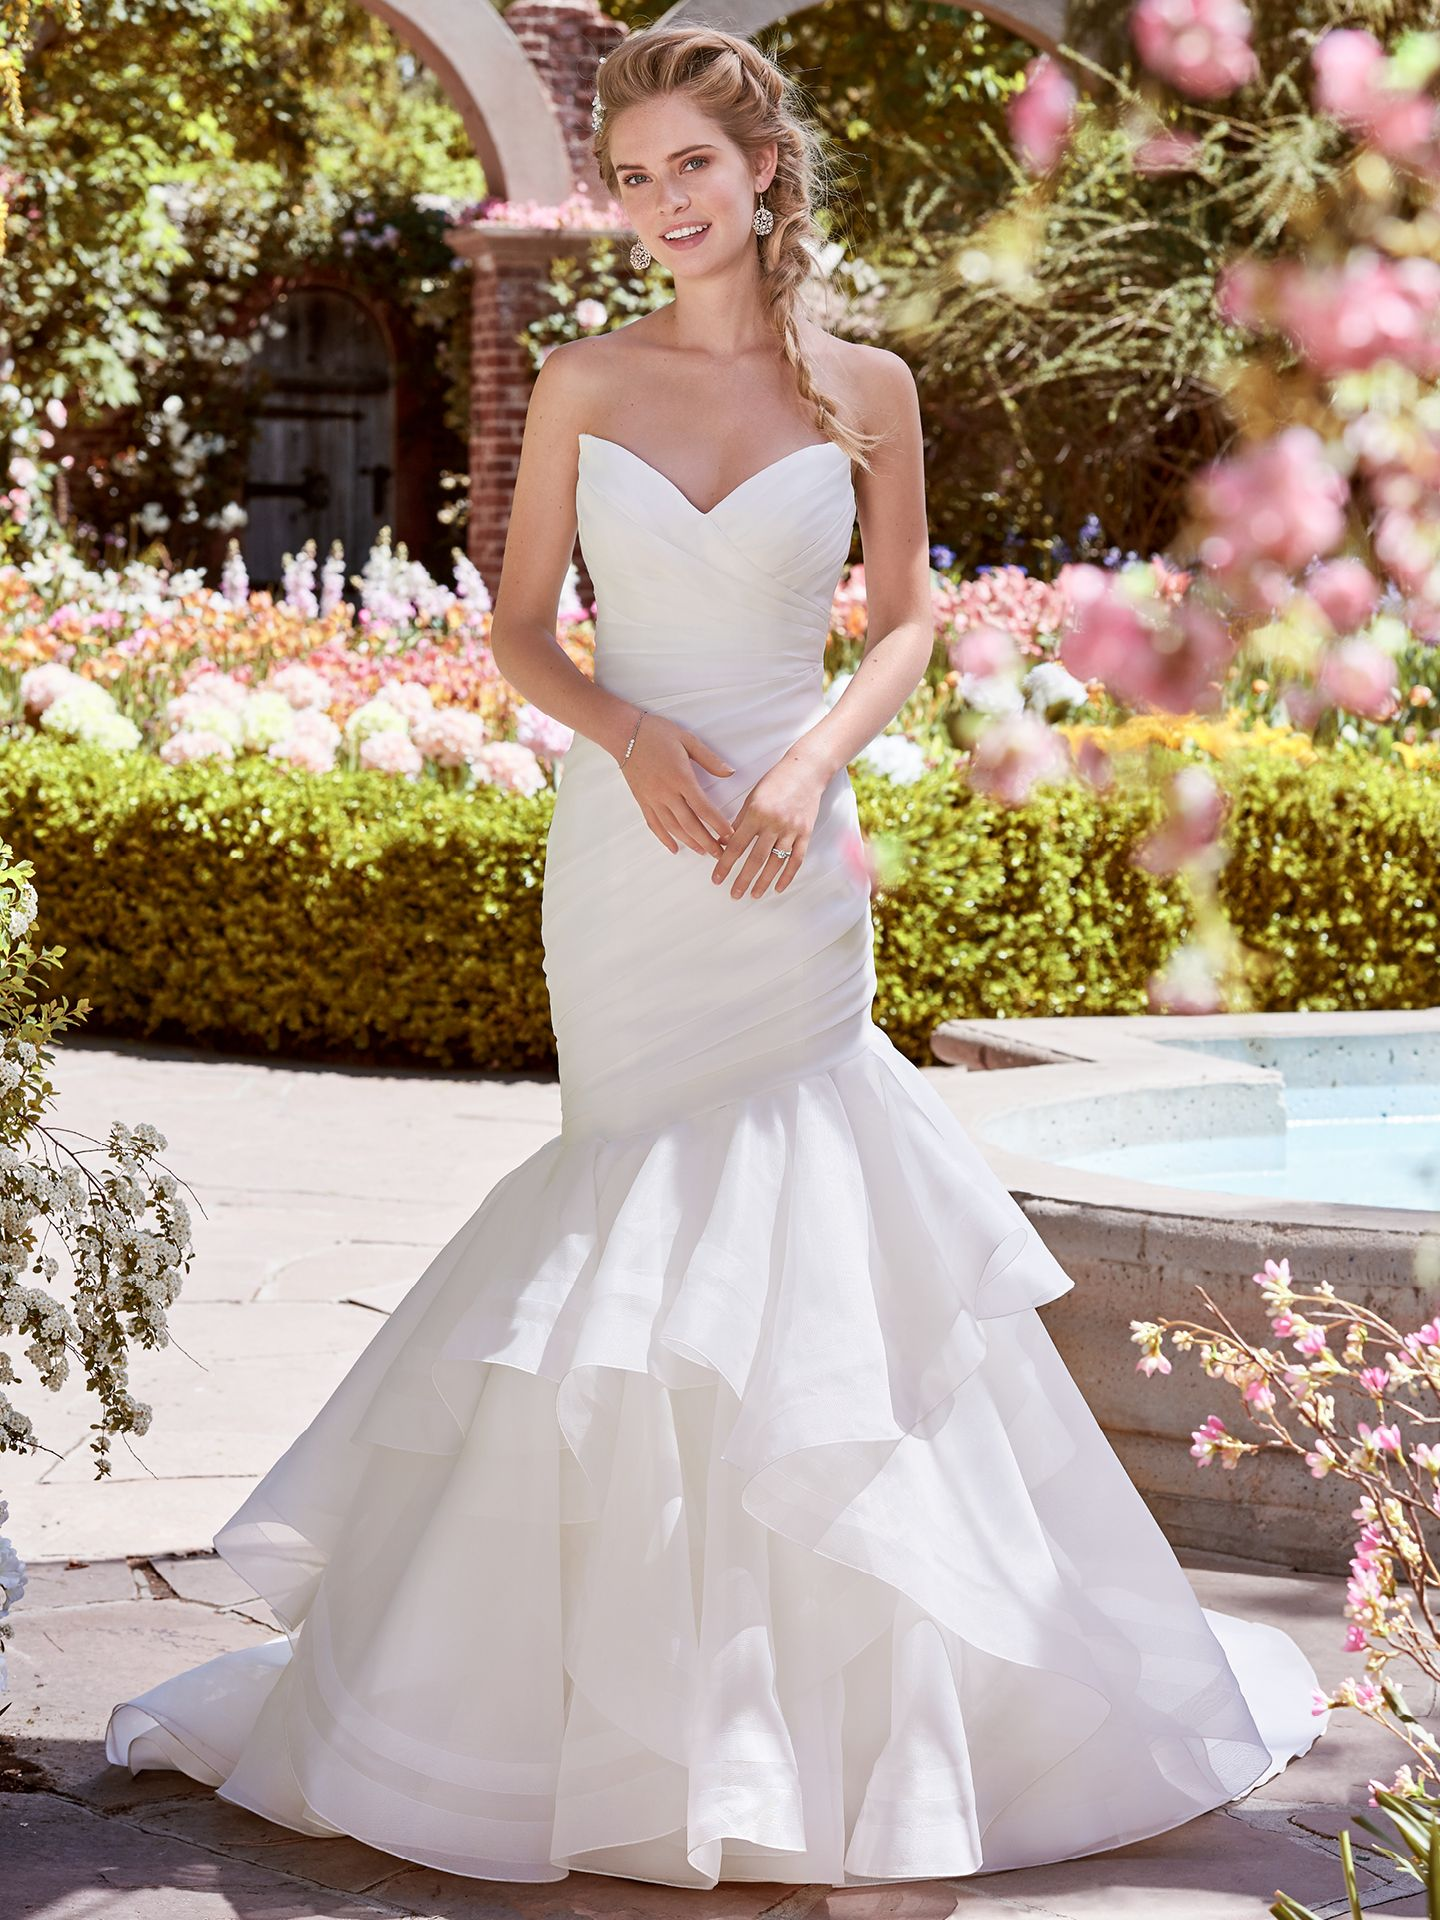 Asymmetrical Ruching Adds Movement and Dimension. Wedding Gowns that Look Great in Photos - Patsy wedding dress by Rebecca Ingram